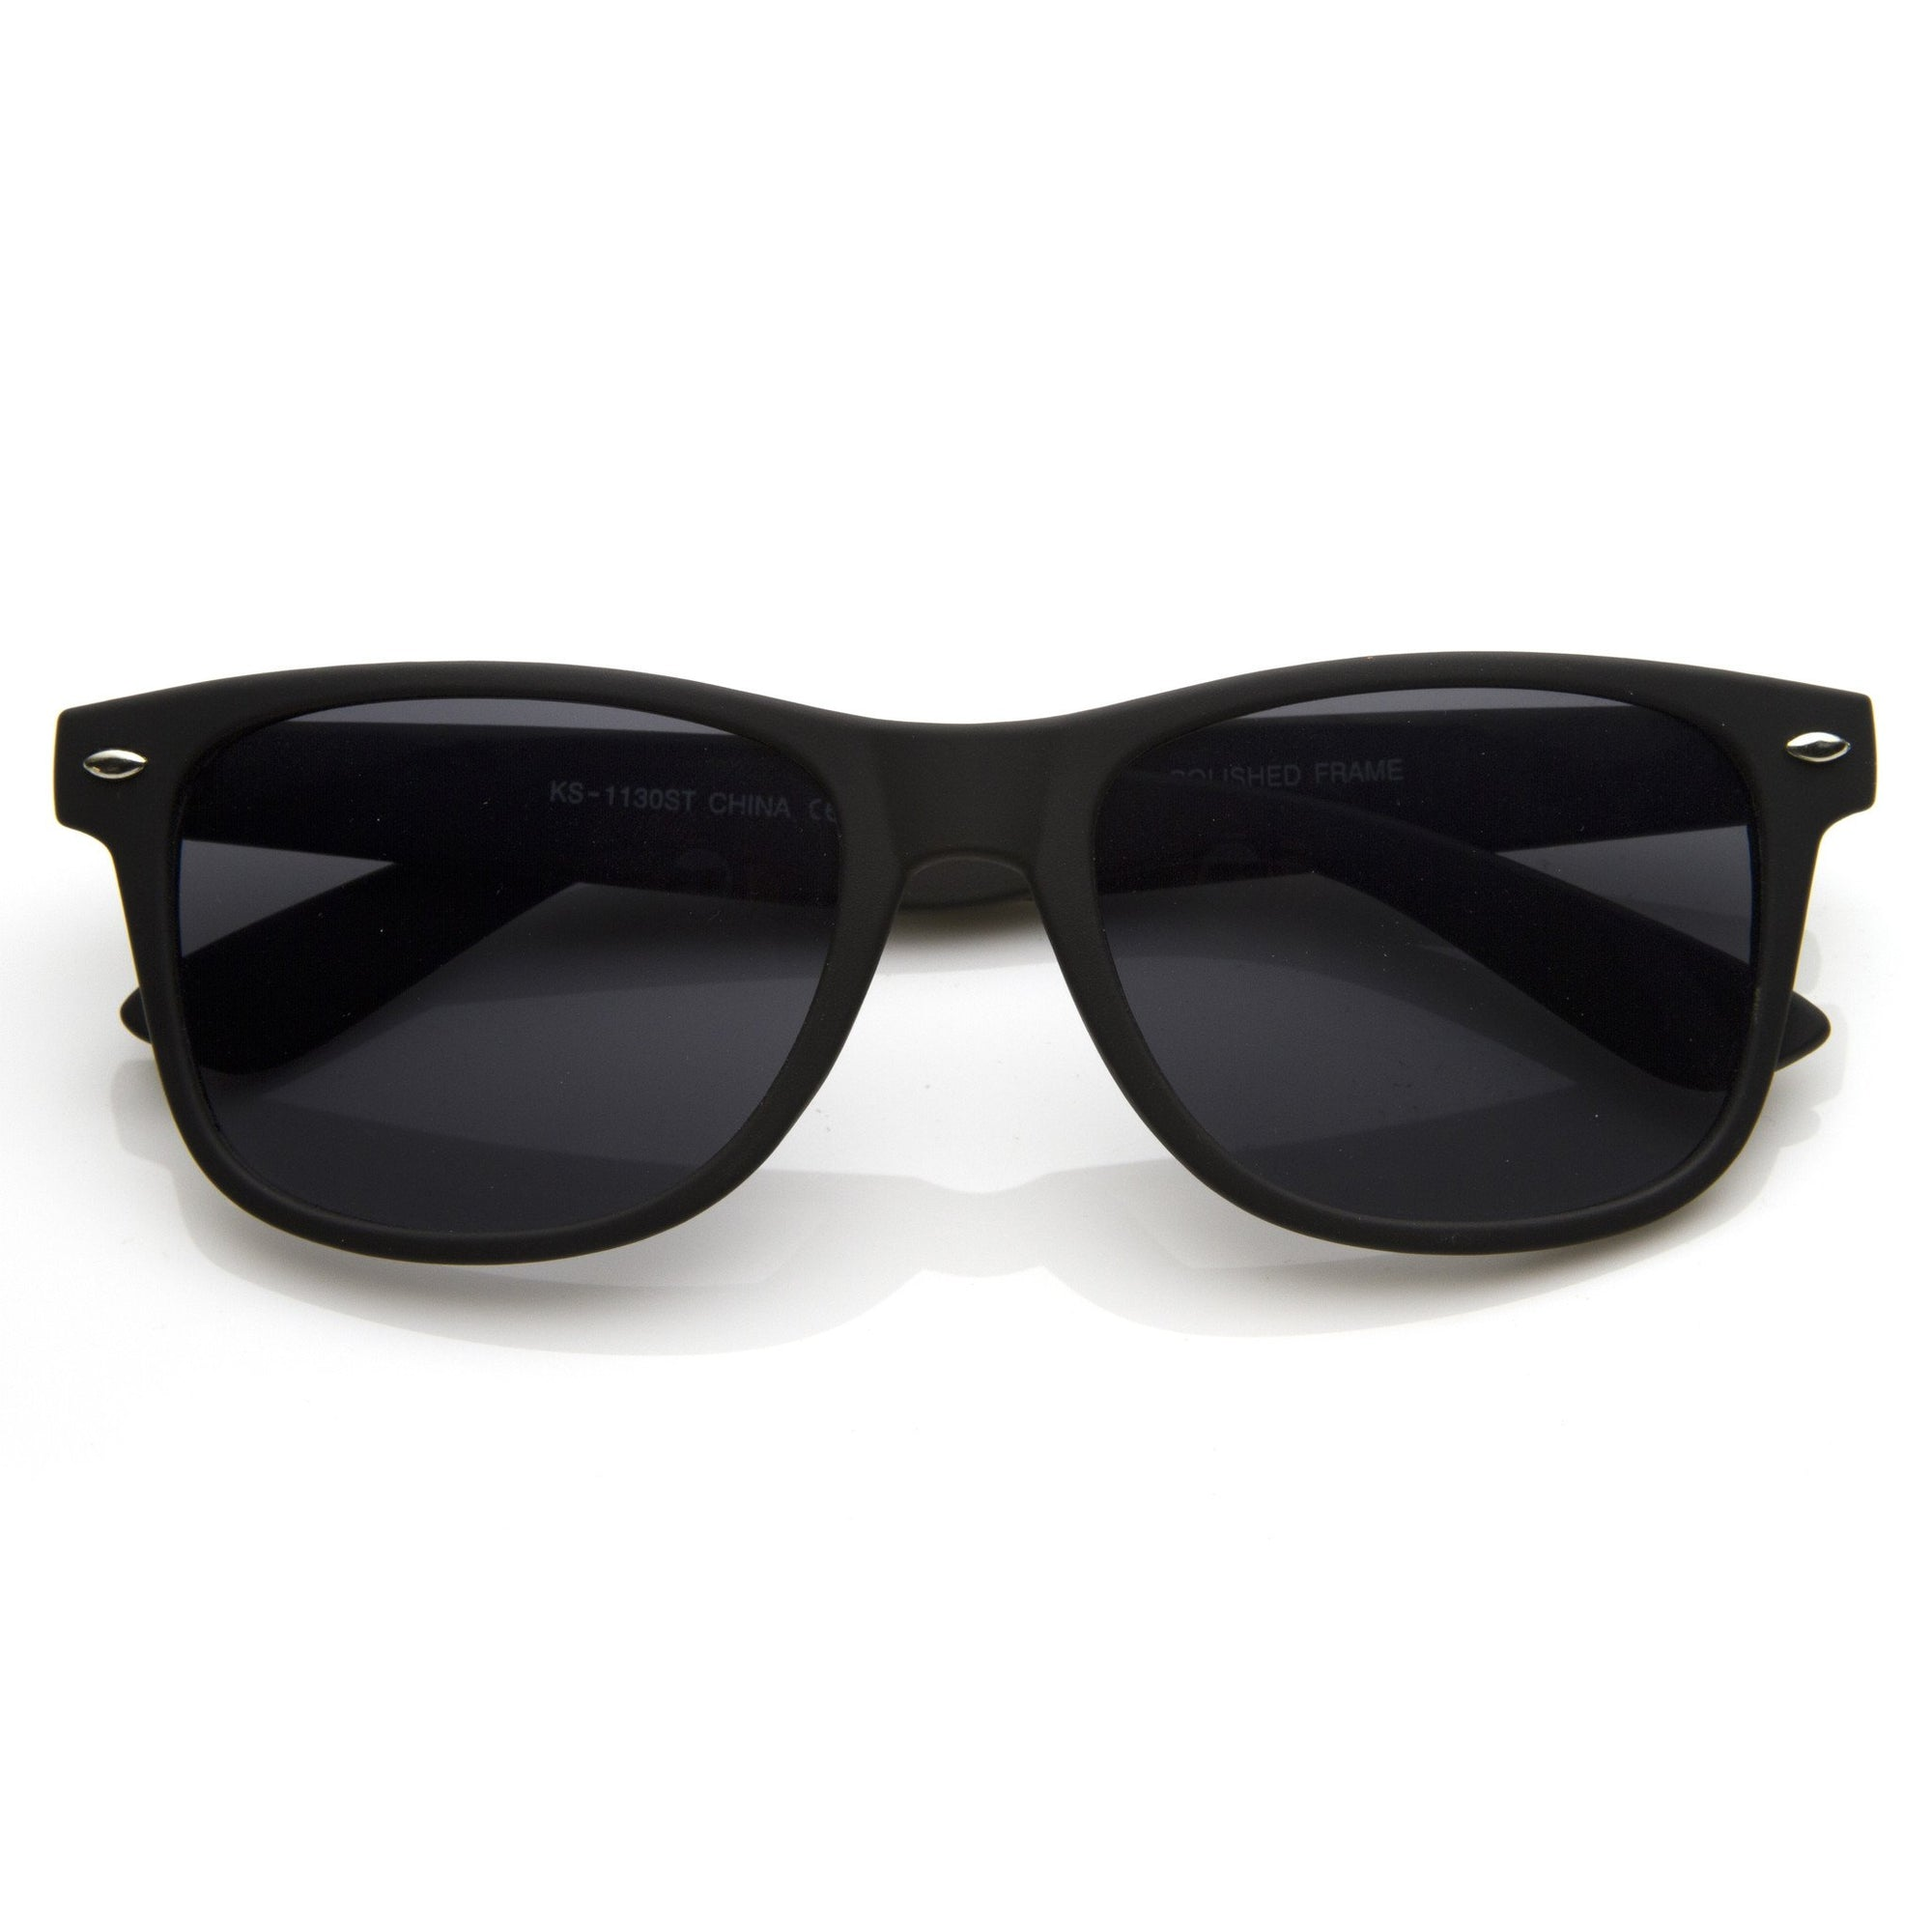 a98af9a571 Retro Matte Flat Black Horned Rim Sunglasses 8698